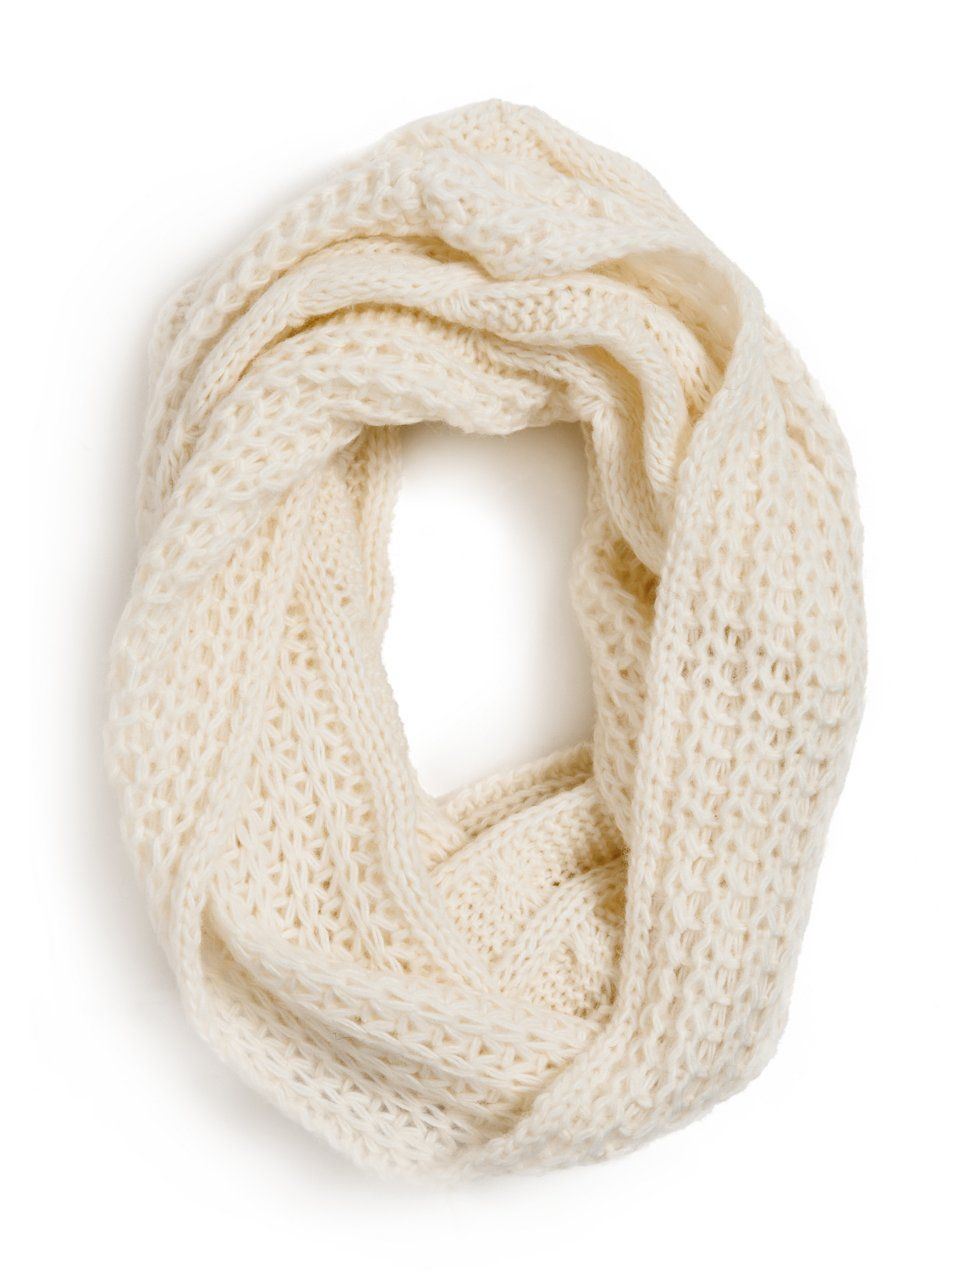 GUESS by Marciano Knit Infinity Scarf, CANVAS WHITE